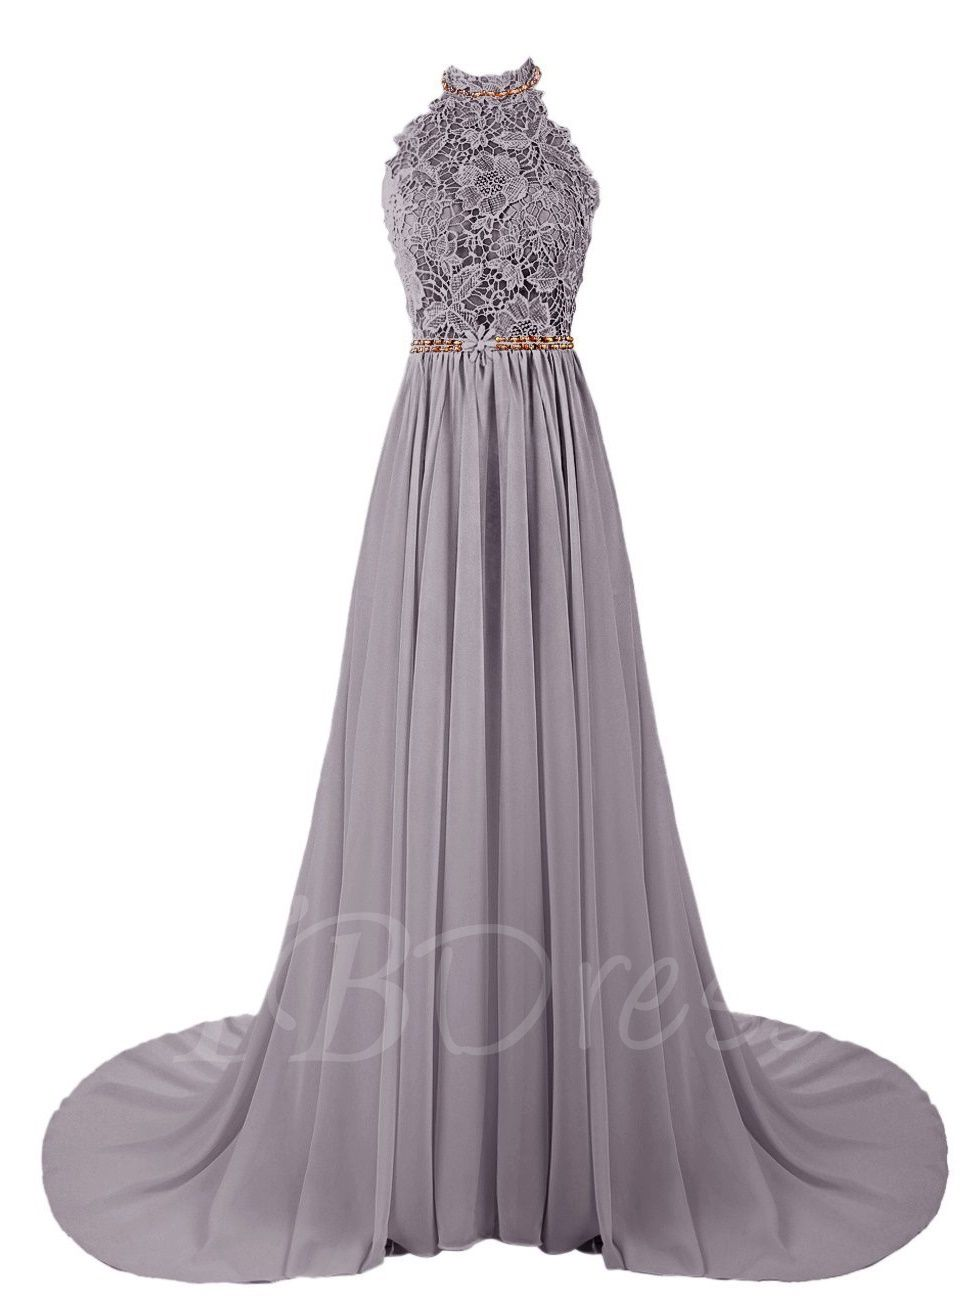 Aline halter beading lace court train prom dress happily ever